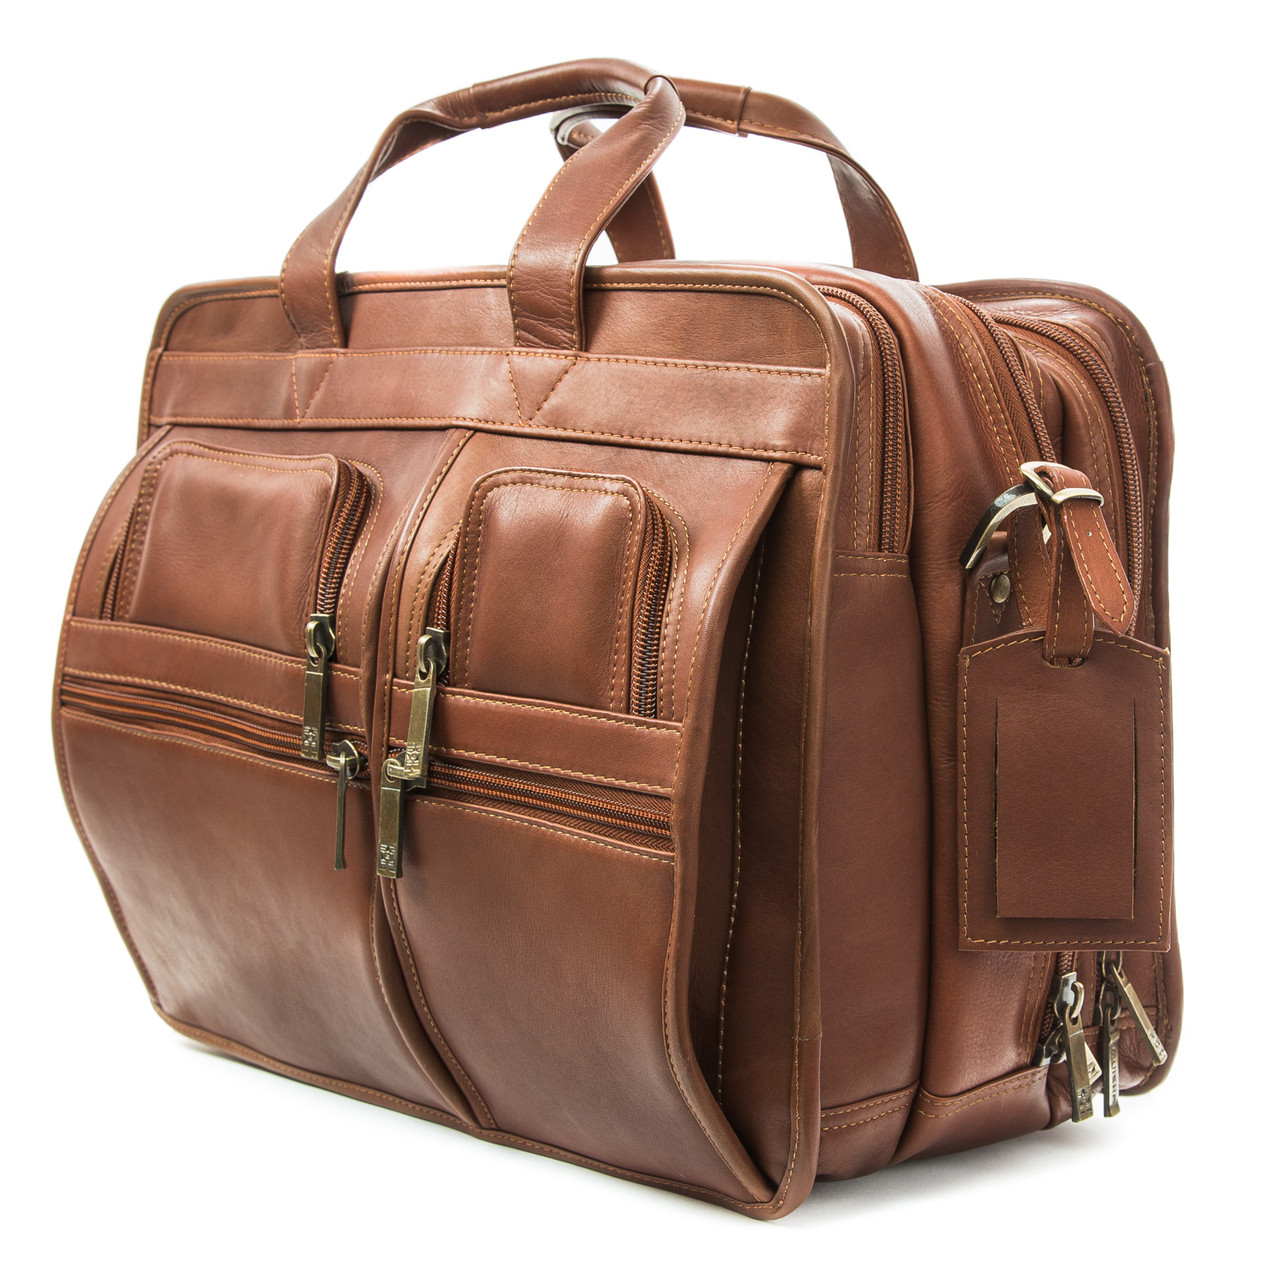 Muiska - Madrid - 17-inch Triple compartment Laptop Briefcase features four outside pockets